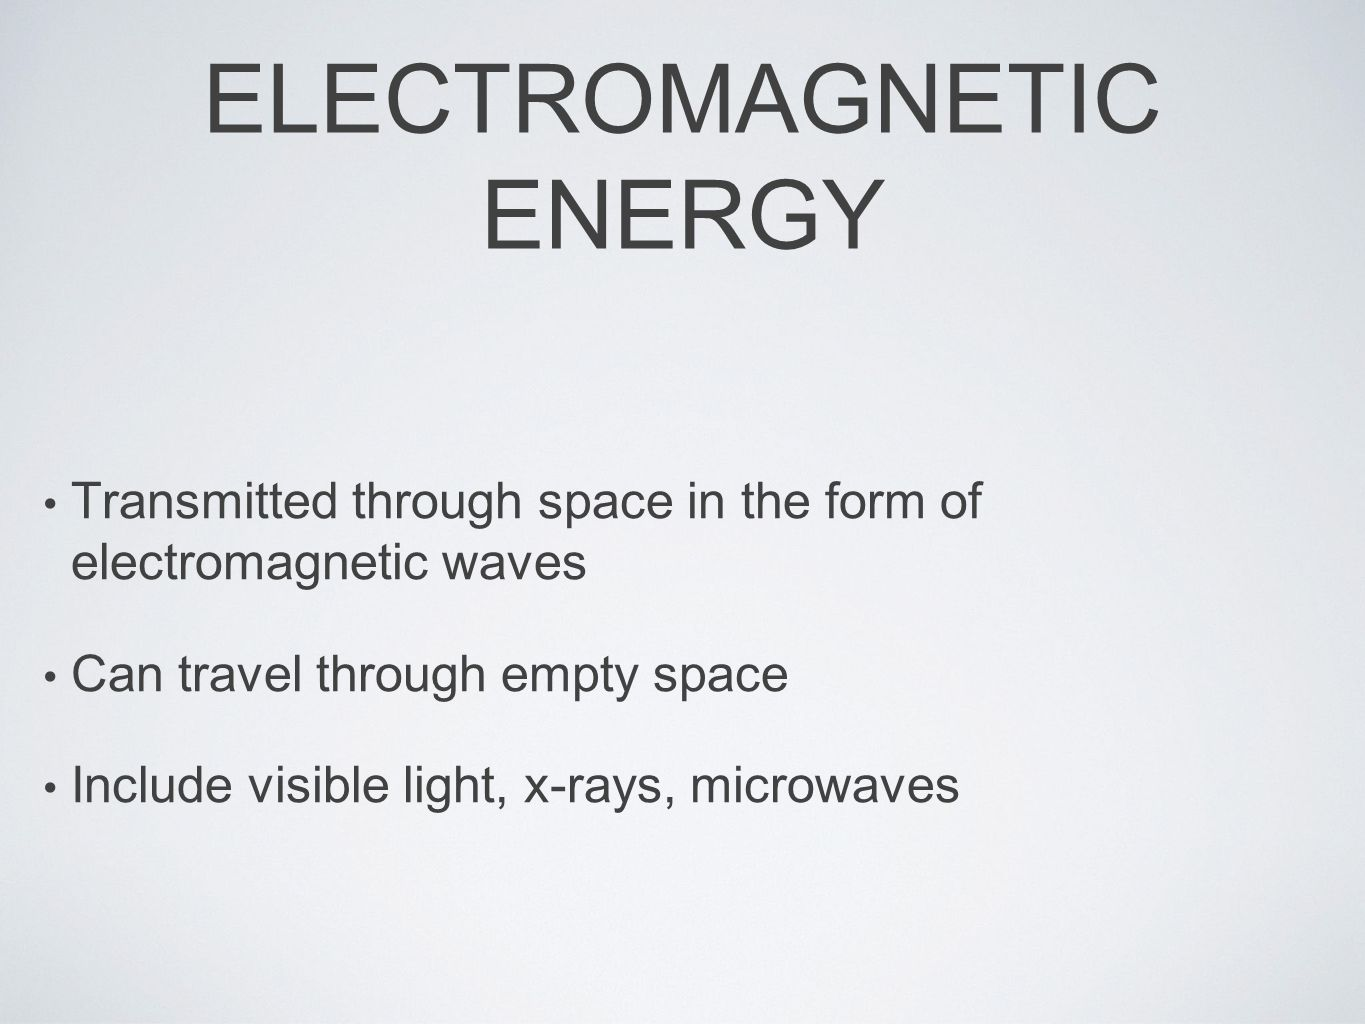 ELECTROMAGNETIC ENERGY Transmitted through space in the form of electromagnetic waves Can travel through empty space Include visible light, x-rays, microwaves